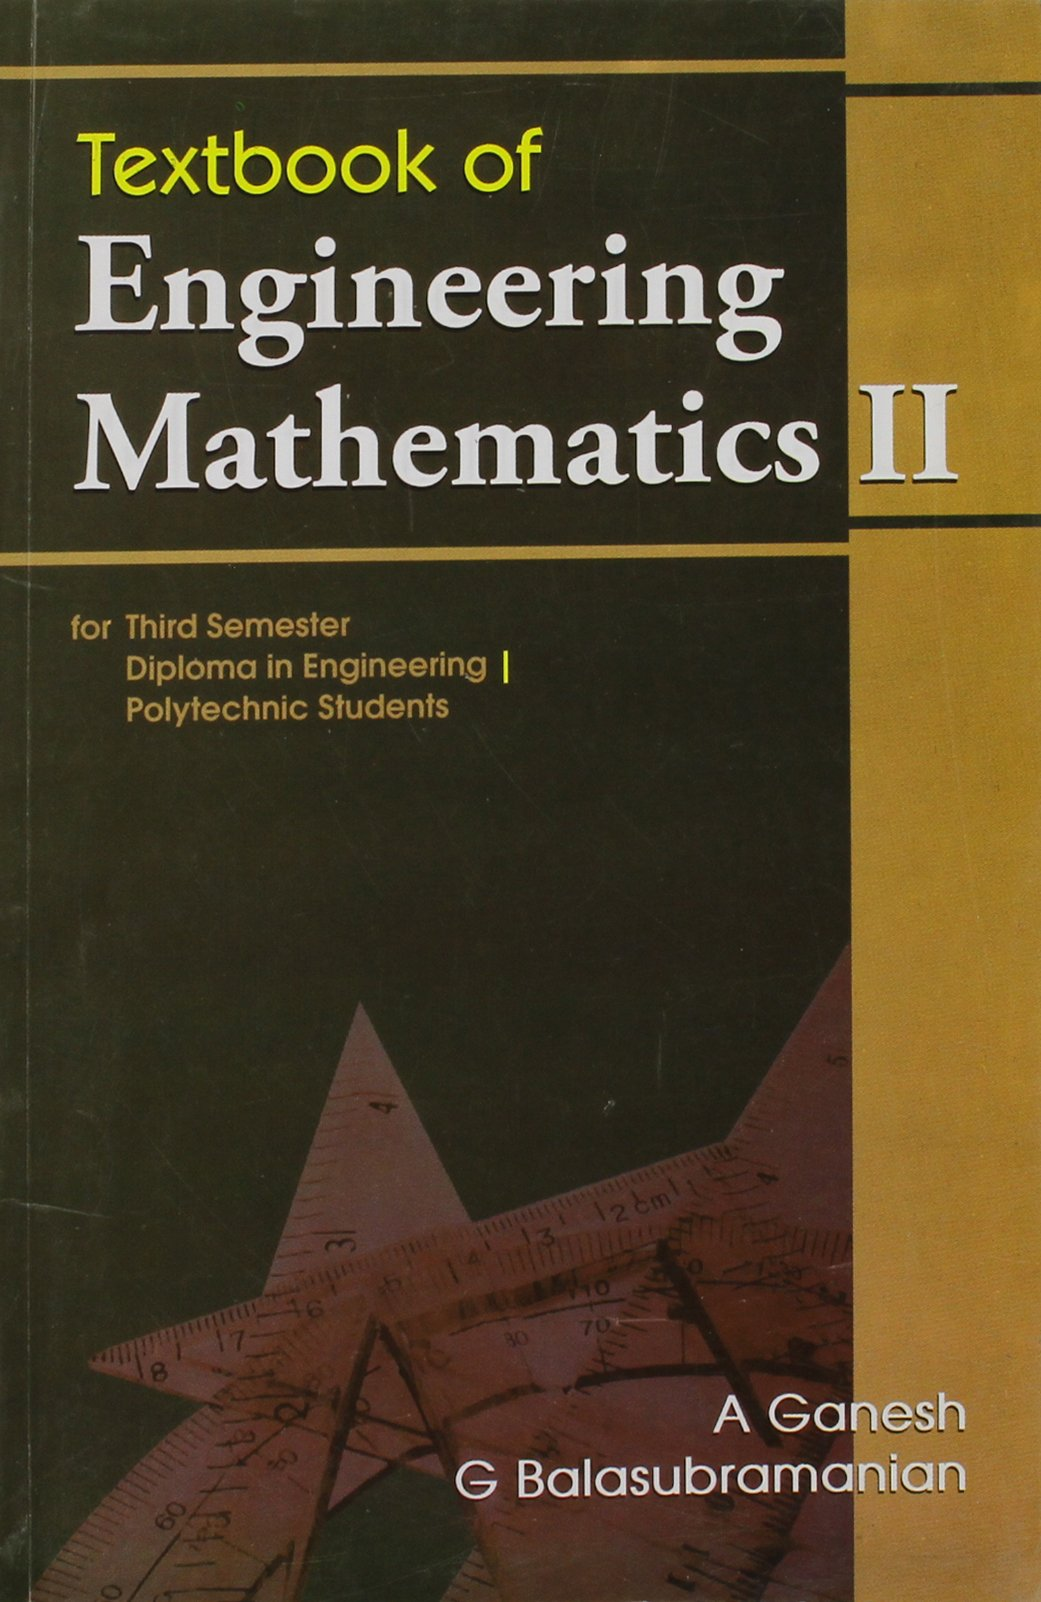 Buy textbook of engineering mathematics ii for third semester buy textbook of engineering mathematics ii for third semester diploma in engineeringpolytechnic srudents book online at low prices in india textbook of malvernweather Choice Image